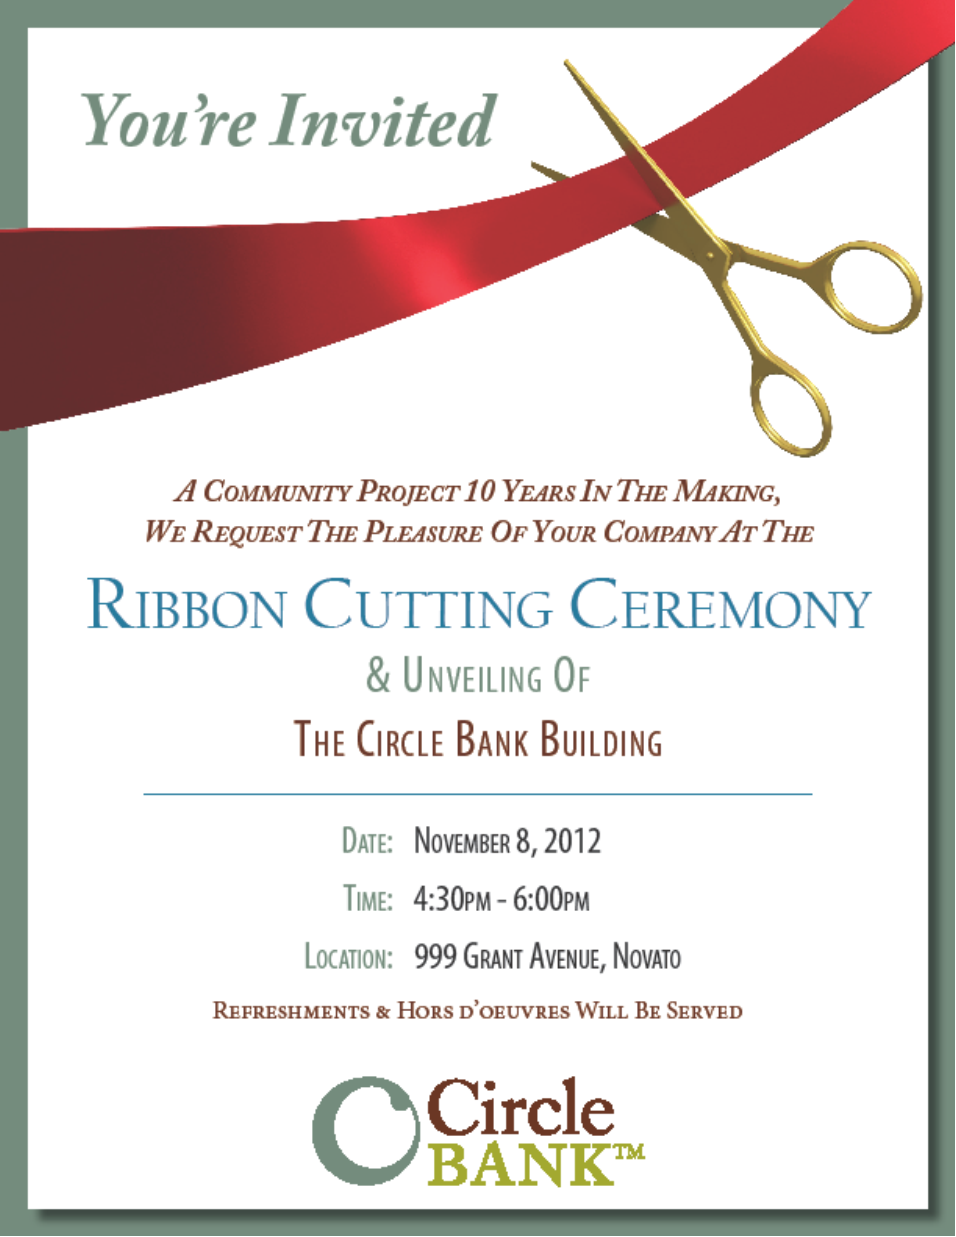 Sample ribbon cutting invitations circle bank 999 grant ribbon grand opening and ribbion cutting sample ribbon cutting invitations circle bank 999 grant ribbon cutting your invitation awaits stopboris Gallery